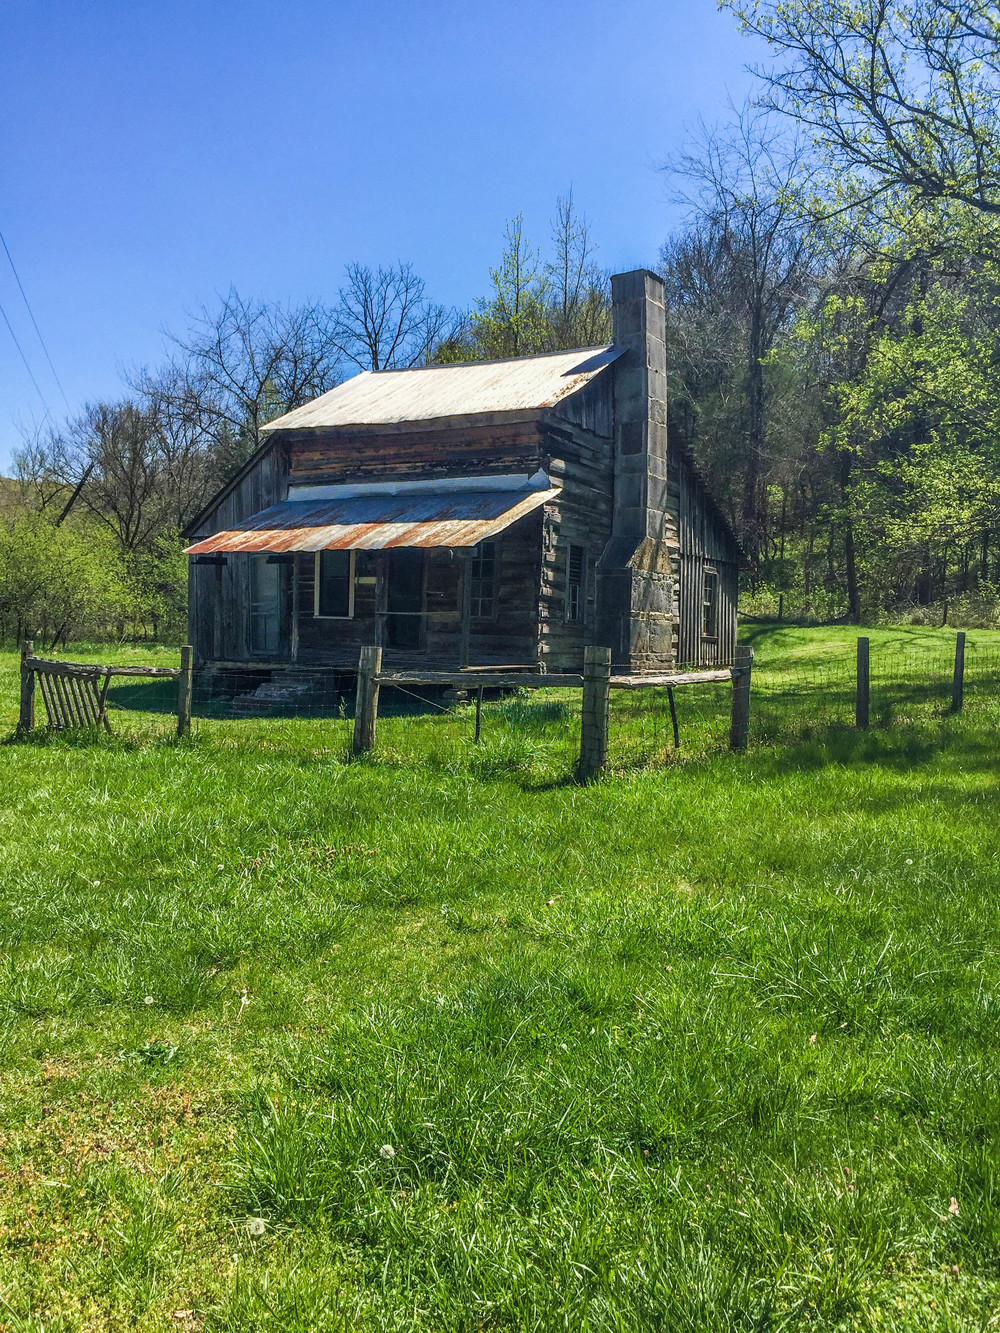 In addition to the natural wonders along the Buffalo River, backpackers can also see cabins from the days of the pioneers, like Slatey Place.